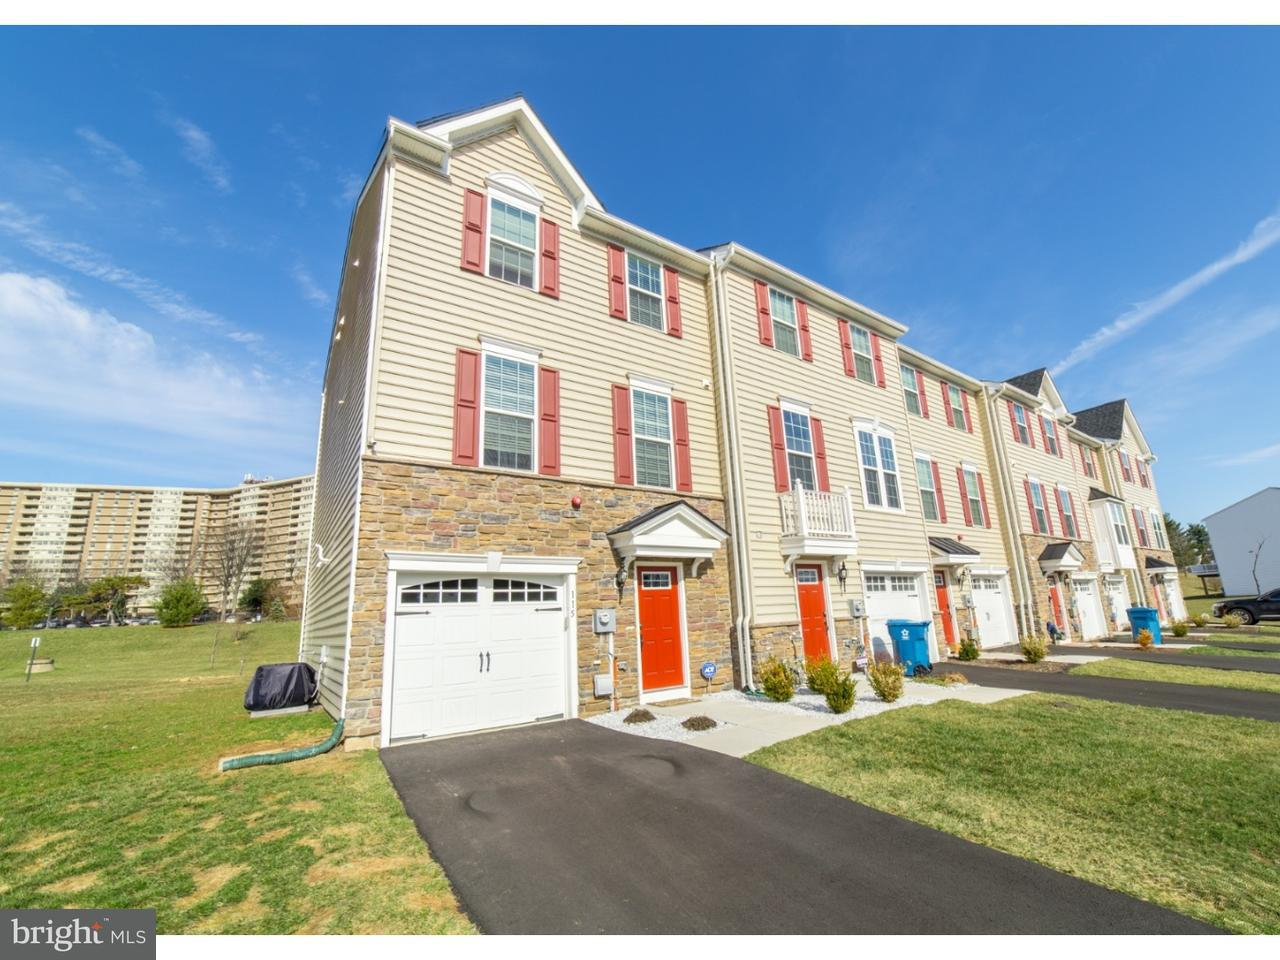 Townhouse for Sale at 115 OLD CEDARBROOK Road Wyncote, Pennsylvania 19095 United States